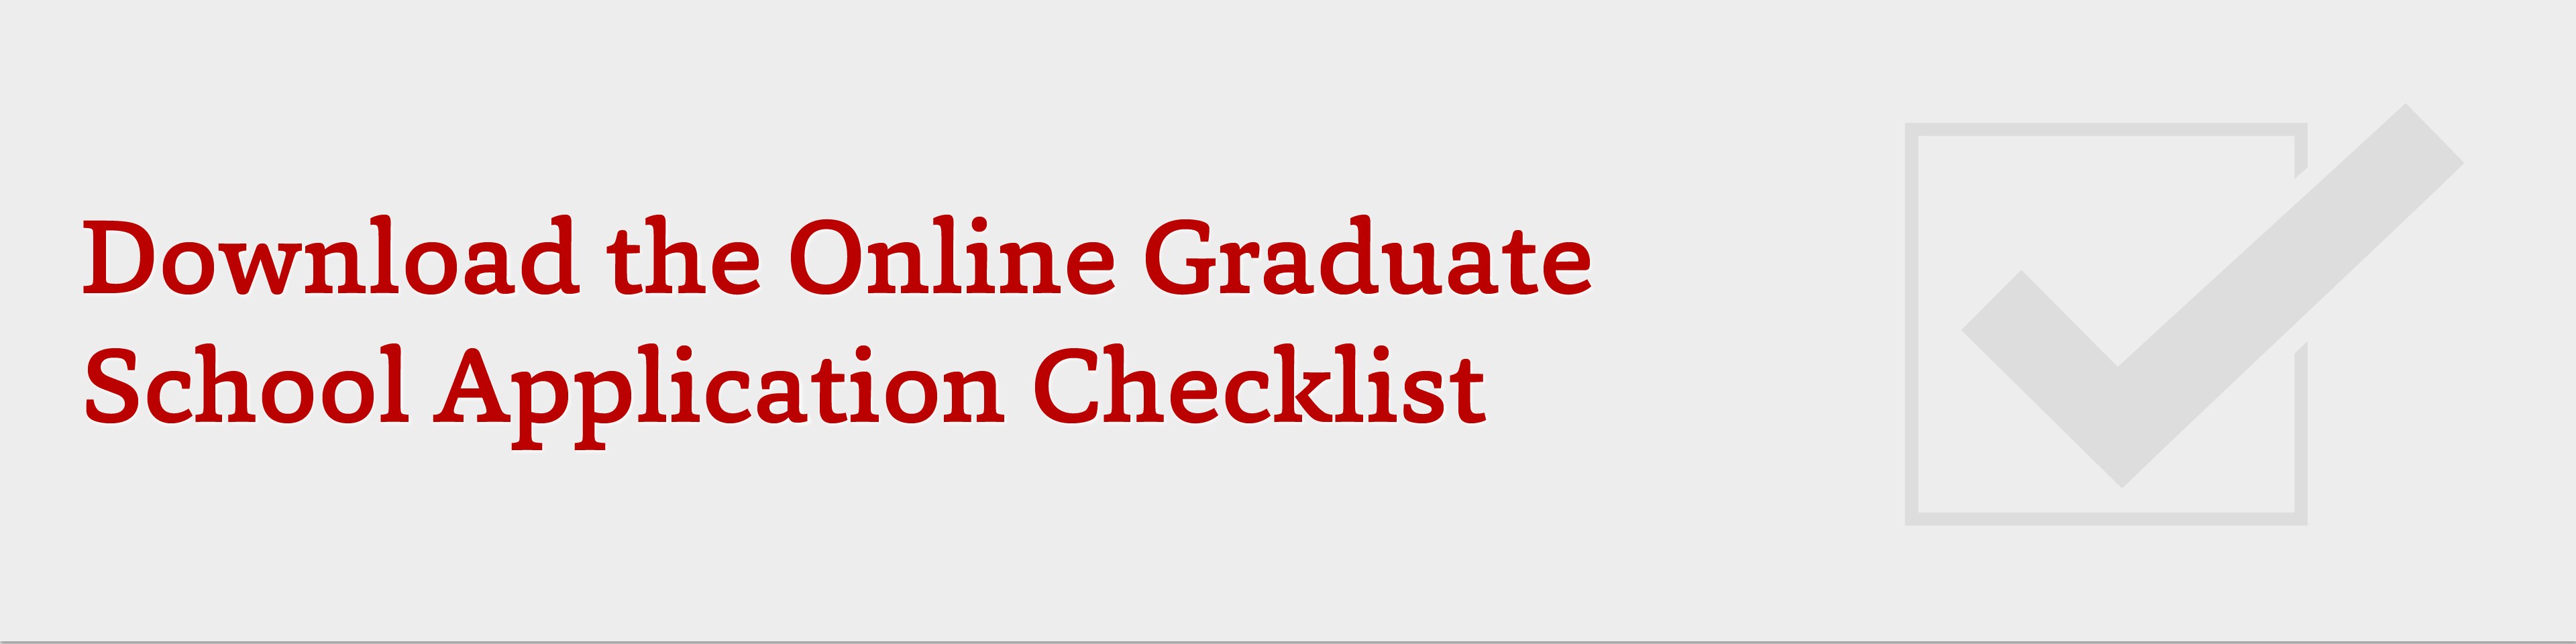 Download the online graduate school application checklist.